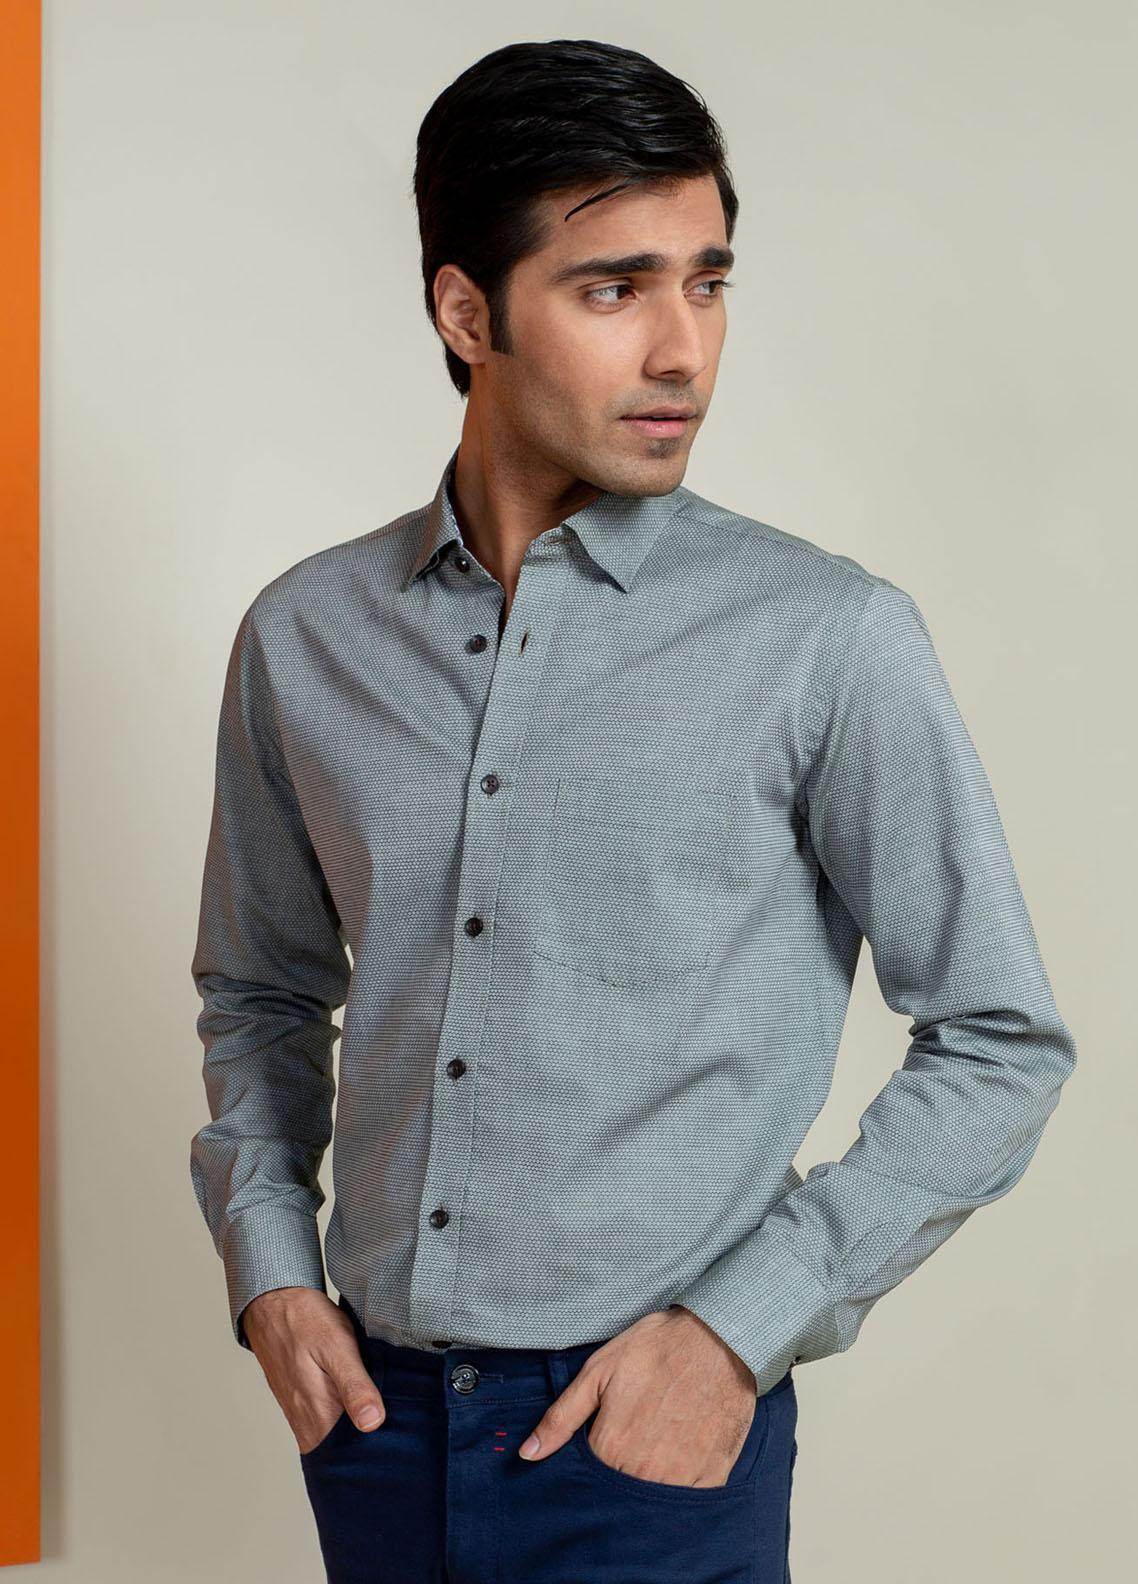 Brumano Cotton Casual Men Shirts -  Olive Honeycomb Patterned Shirt With Detailing